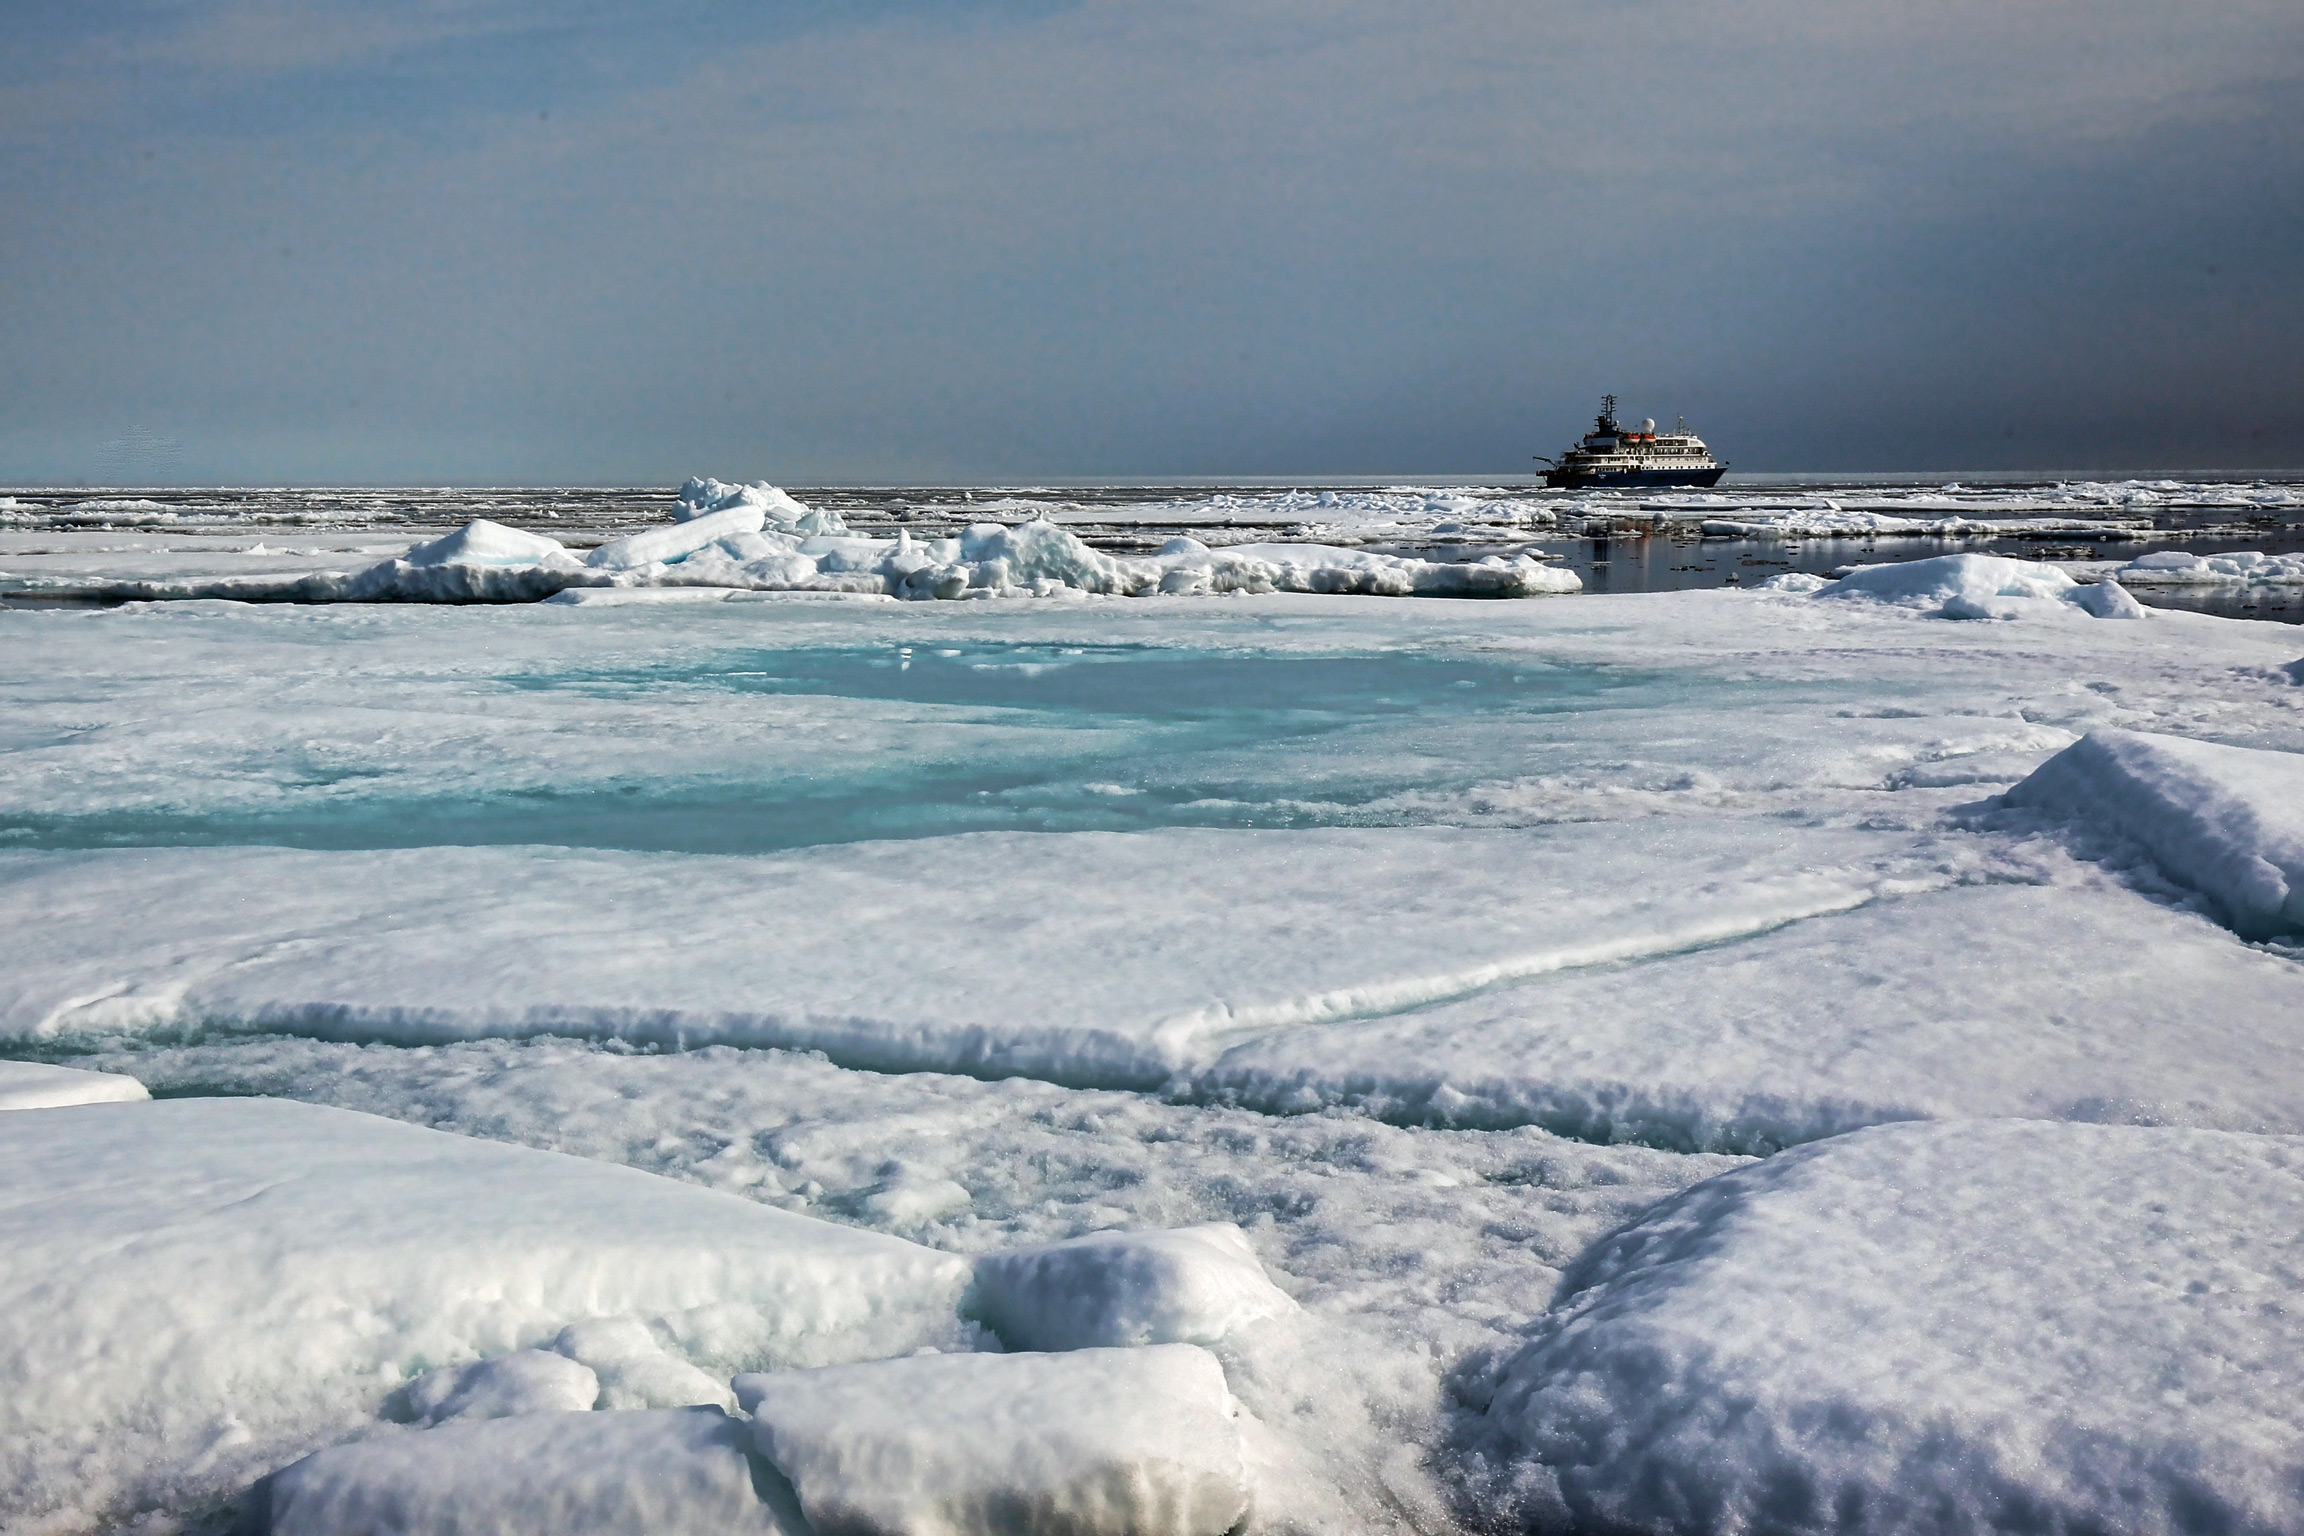 Exploring the edge of sea ice, approximately 81 degrees north latitude.